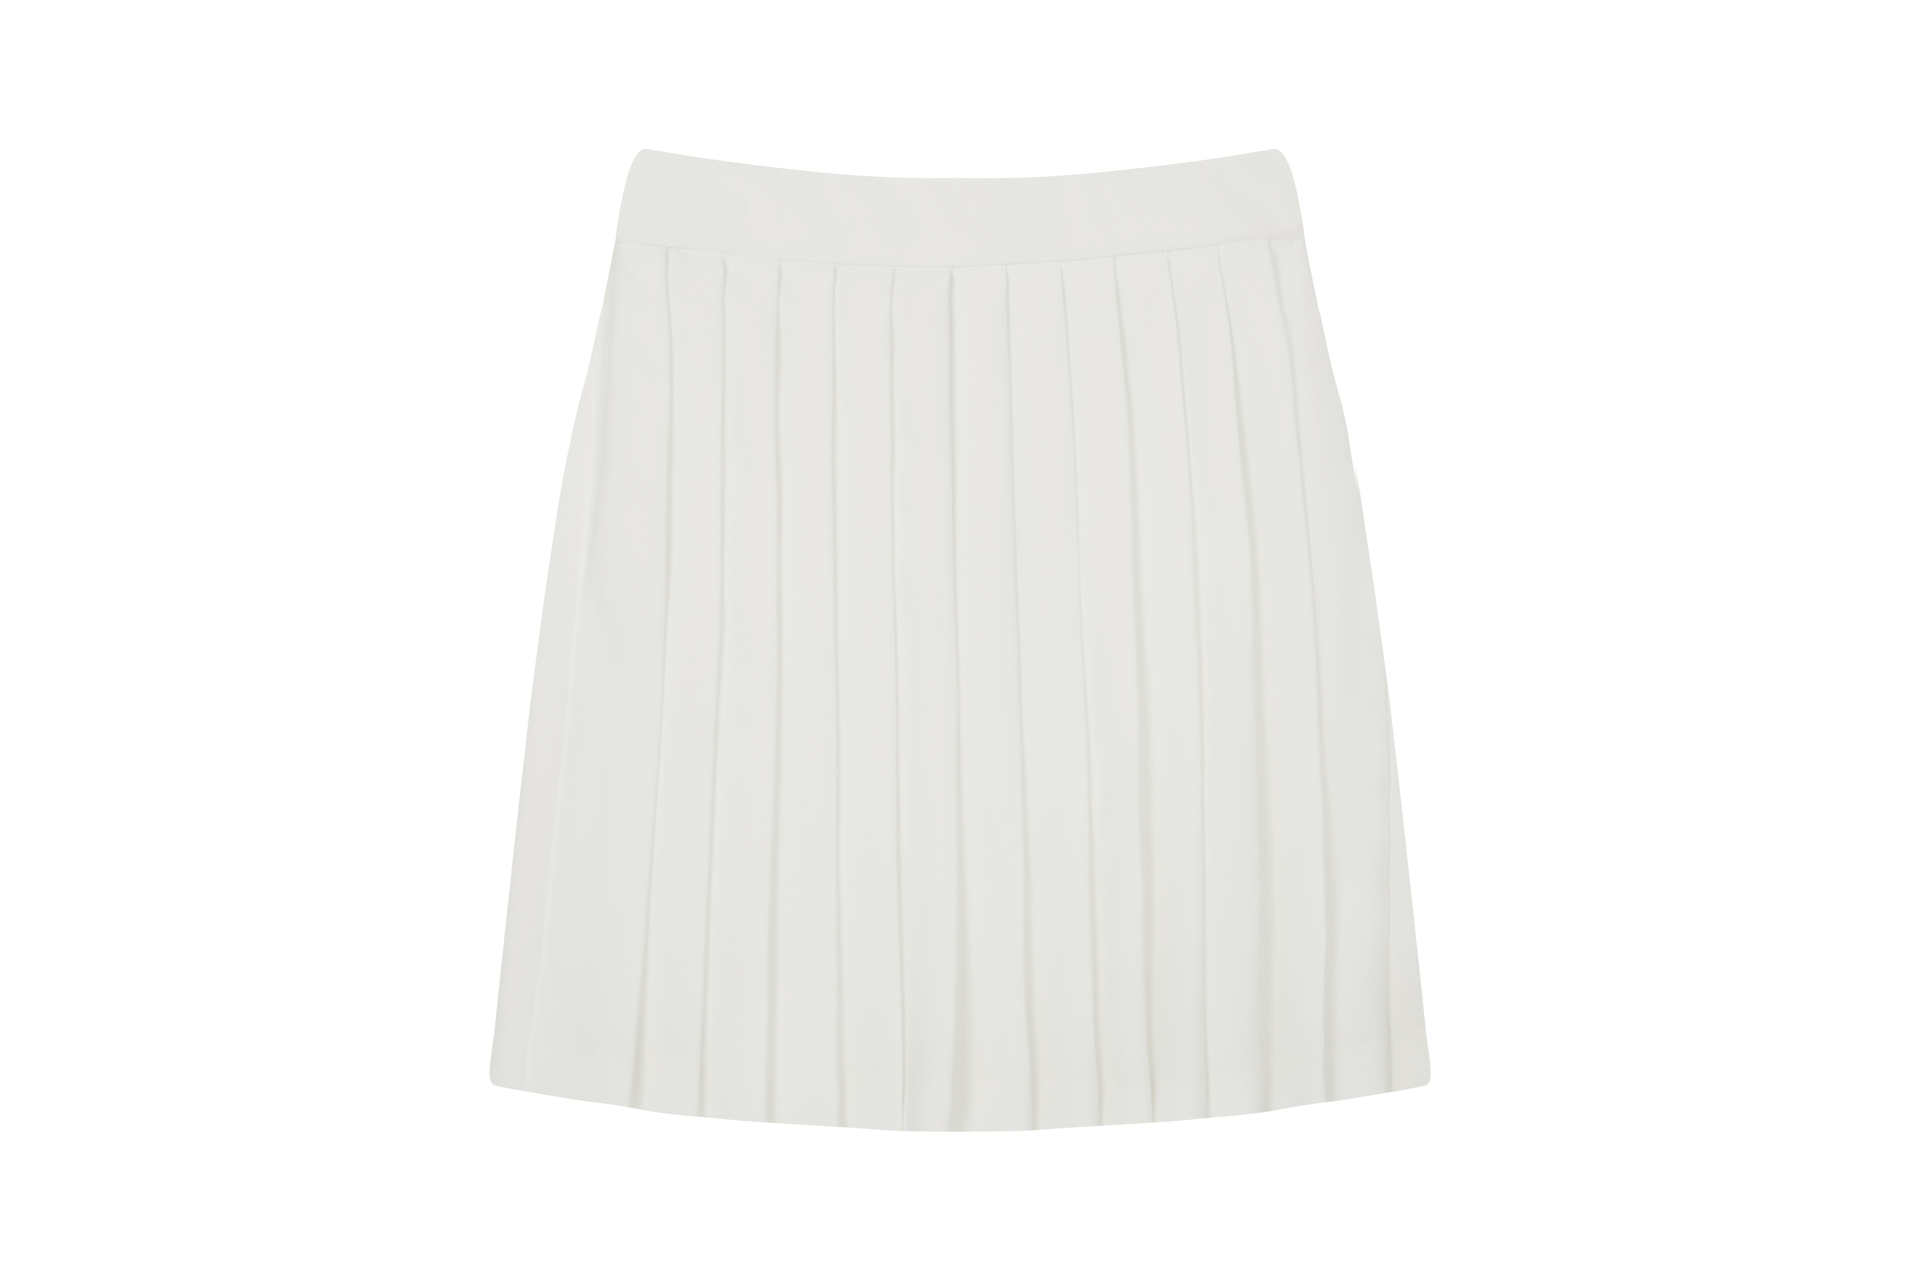 72dpi-2391218071-7.-BY-JOHNNY,-Aimee-Pleat-Skirt-White,-290,-www.byjohnny.com.au